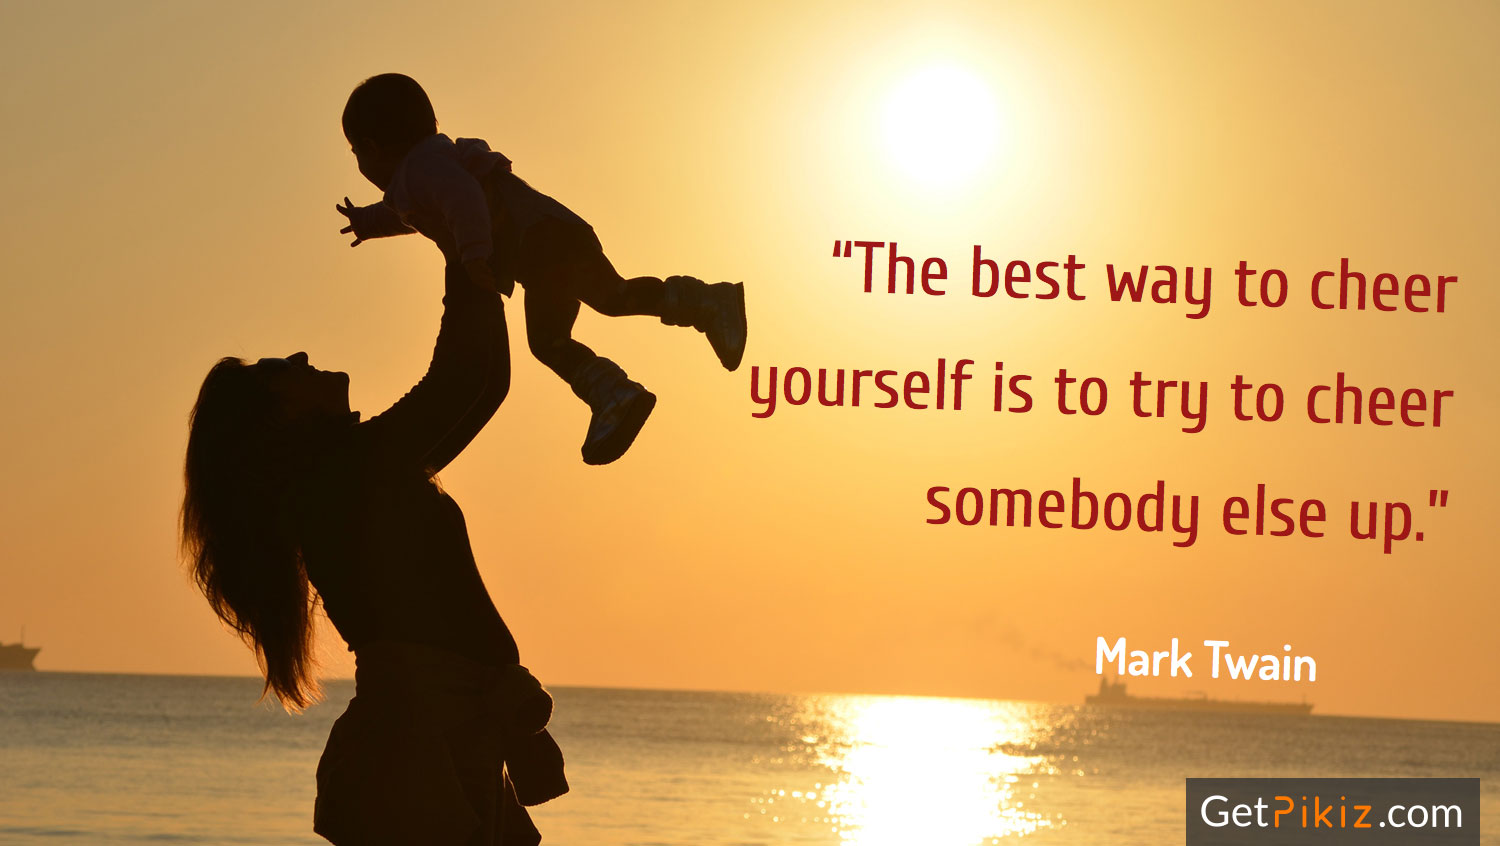 """The best way to cheer yourself is to try to cheer somebody else up."" -Mark Twain"